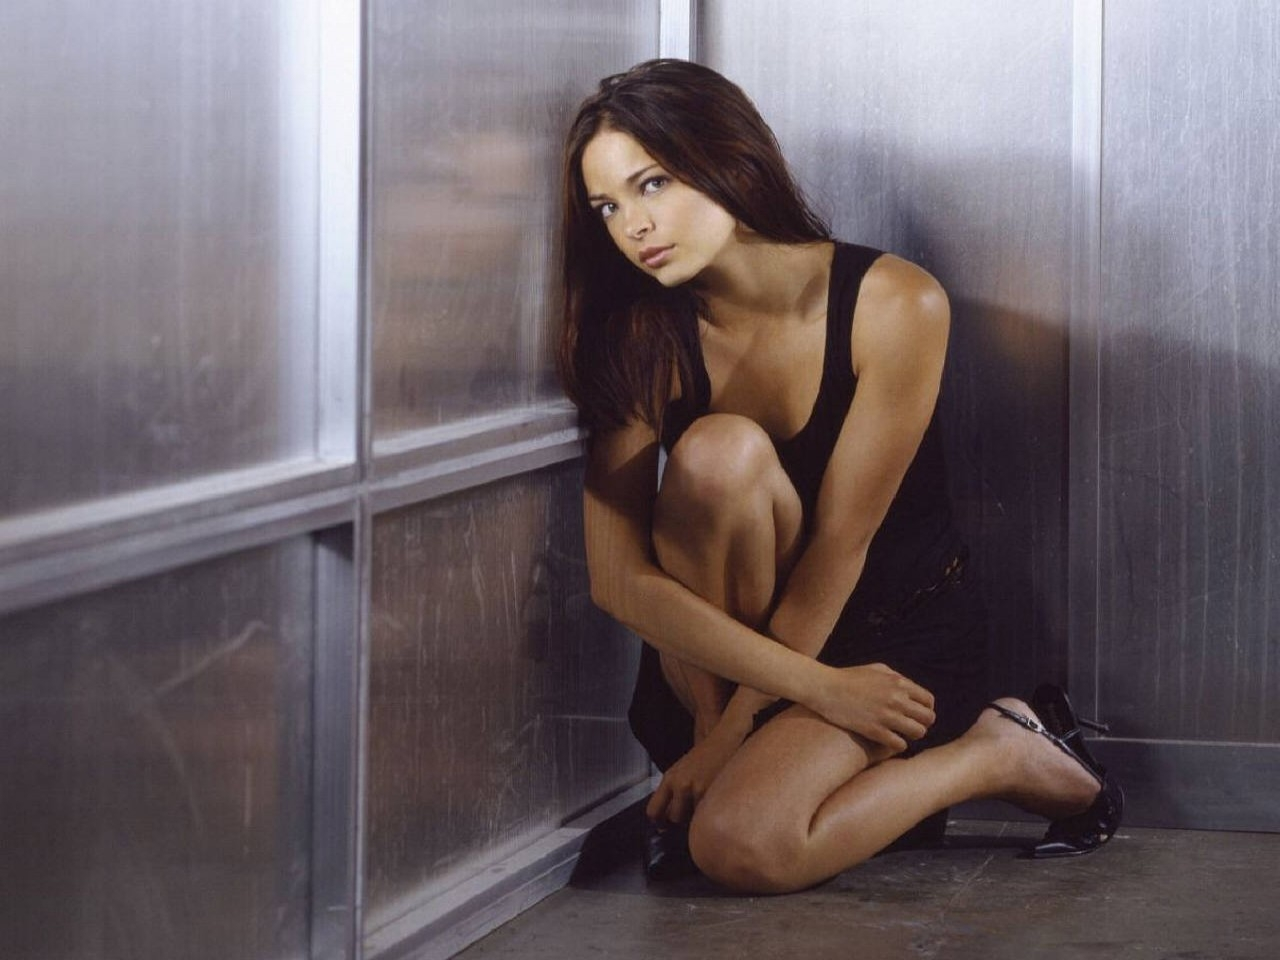 Wallpaper dell'attrice canadese Kristin Kreuk